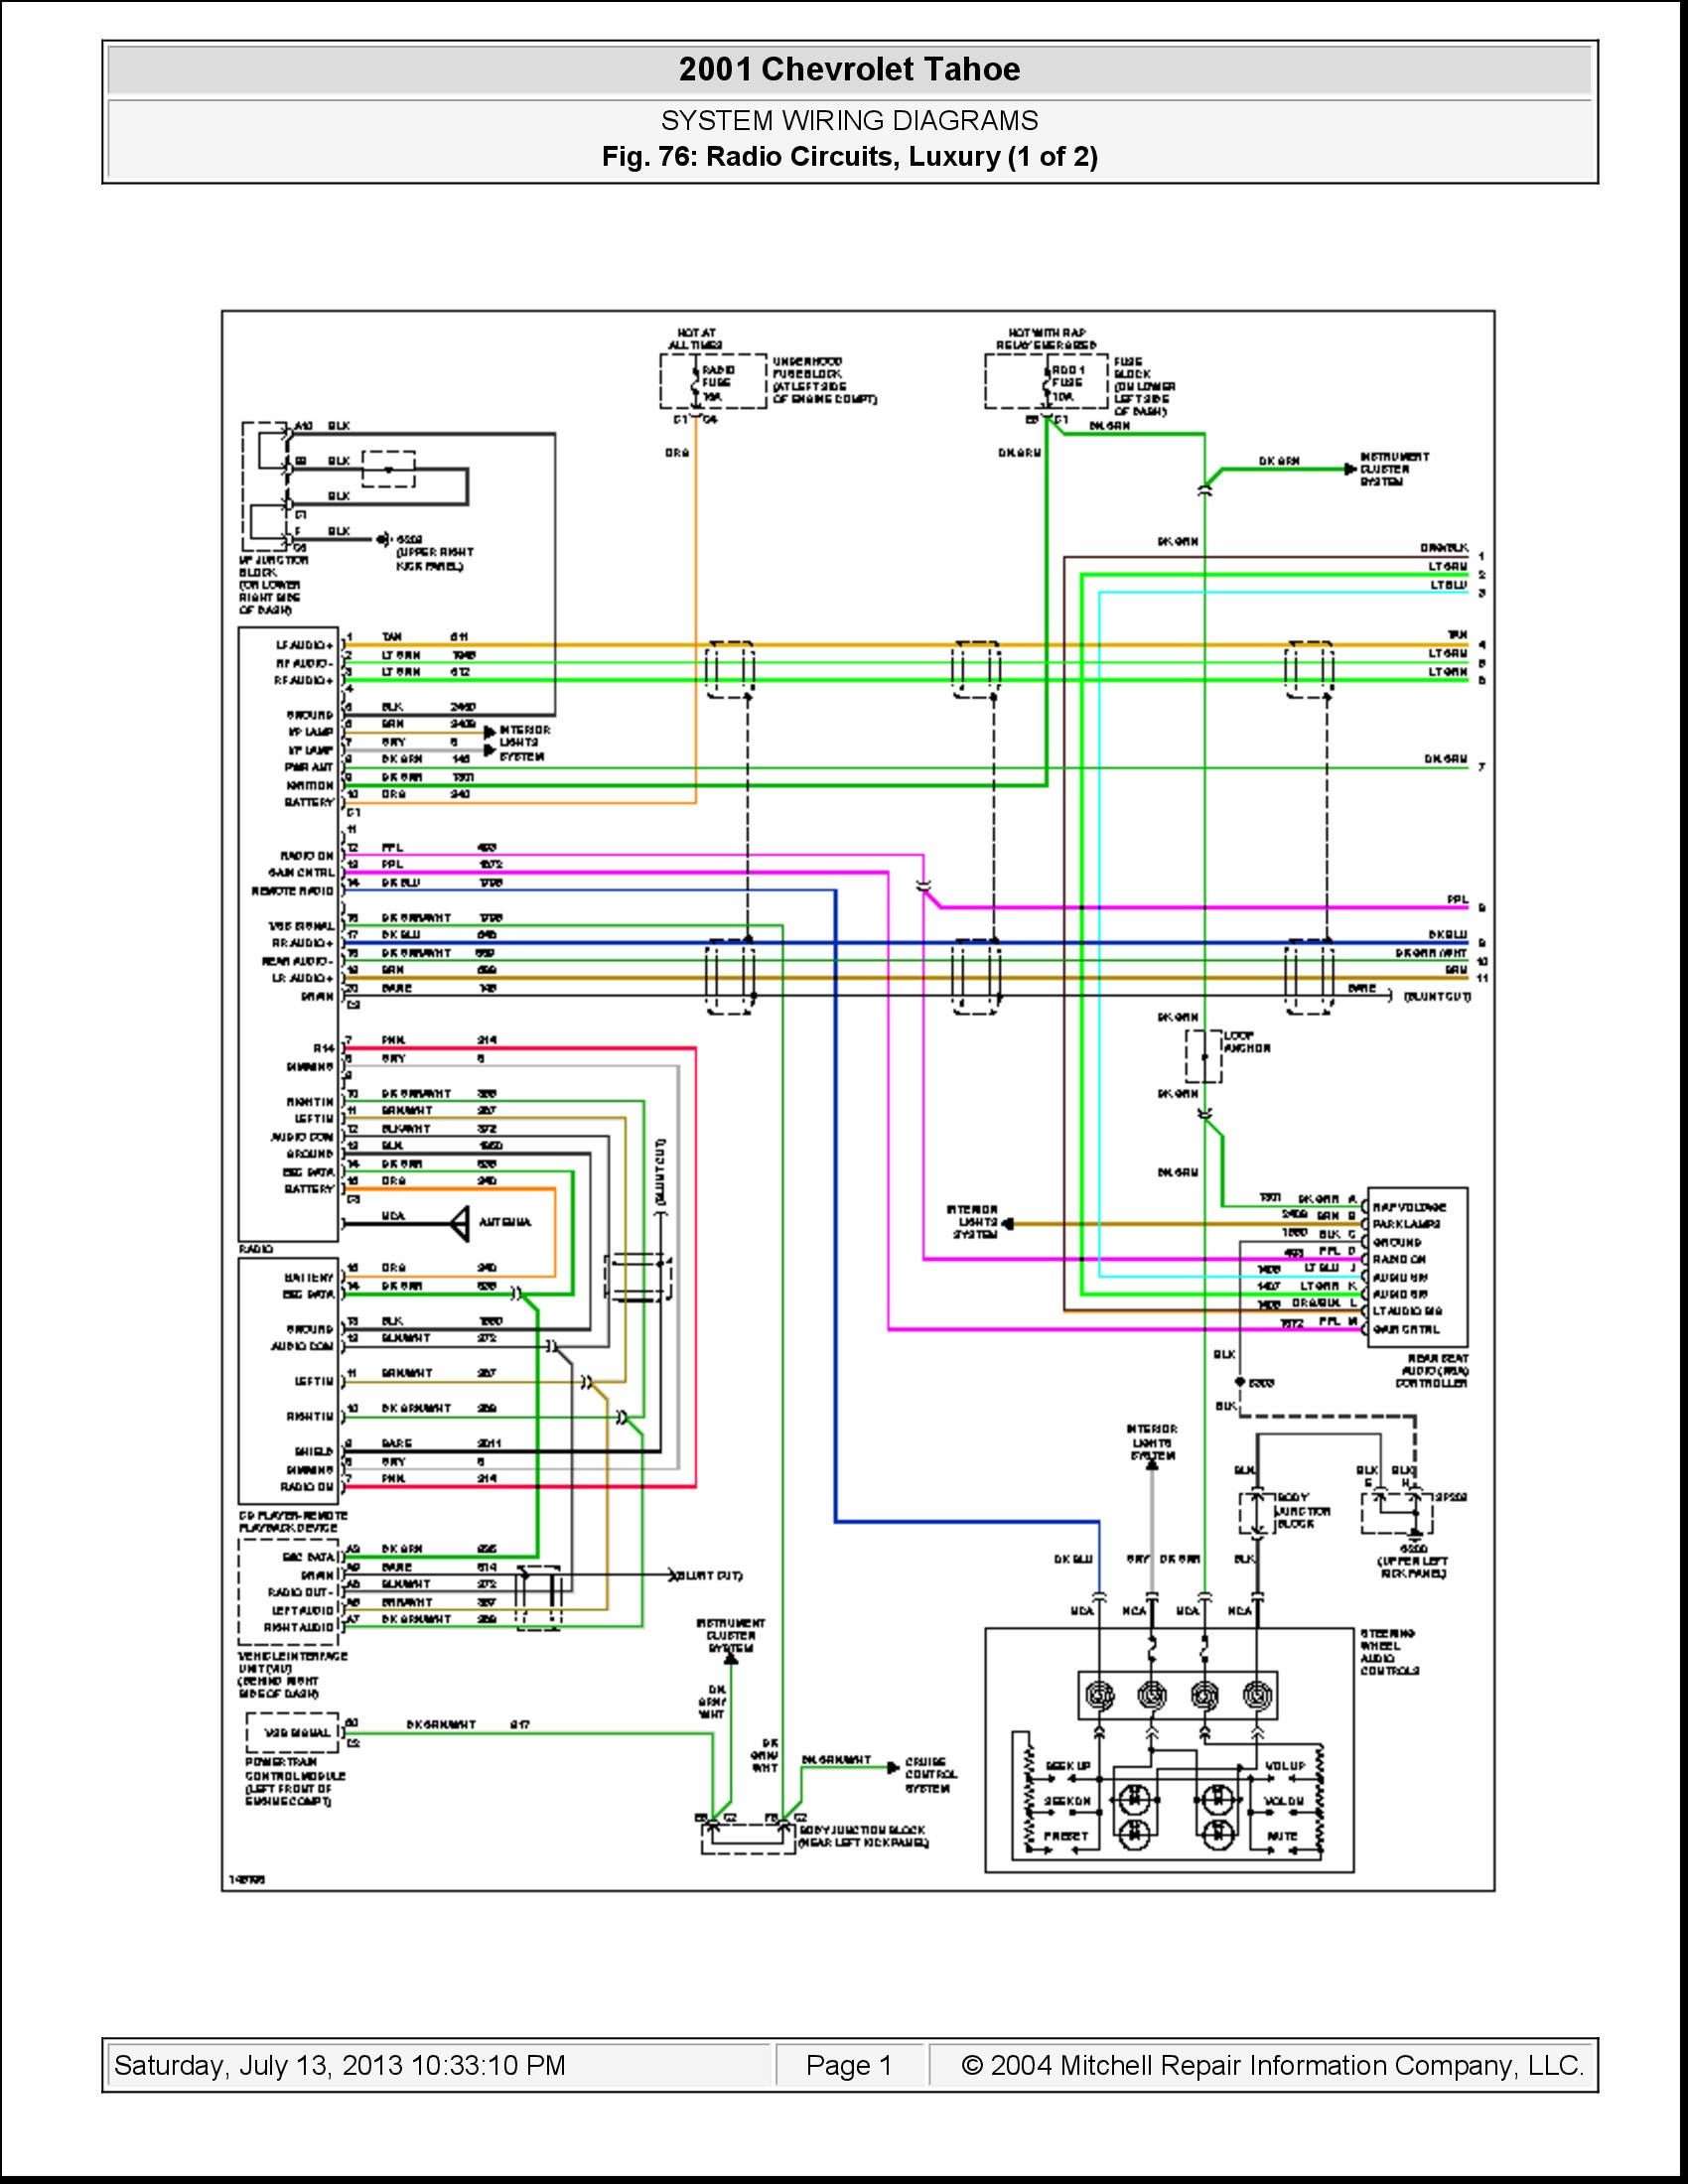 [SCHEMATICS_4FR]  1999 Tahoe Headlight Wiring Diagram -Hidden Car Antenna Wiring Diagram |  Begeboy Wiring Diagram Source | Stereo Wiring Diagram For 99 Chevy Tahoe |  | Begeboy Wiring Diagram Source